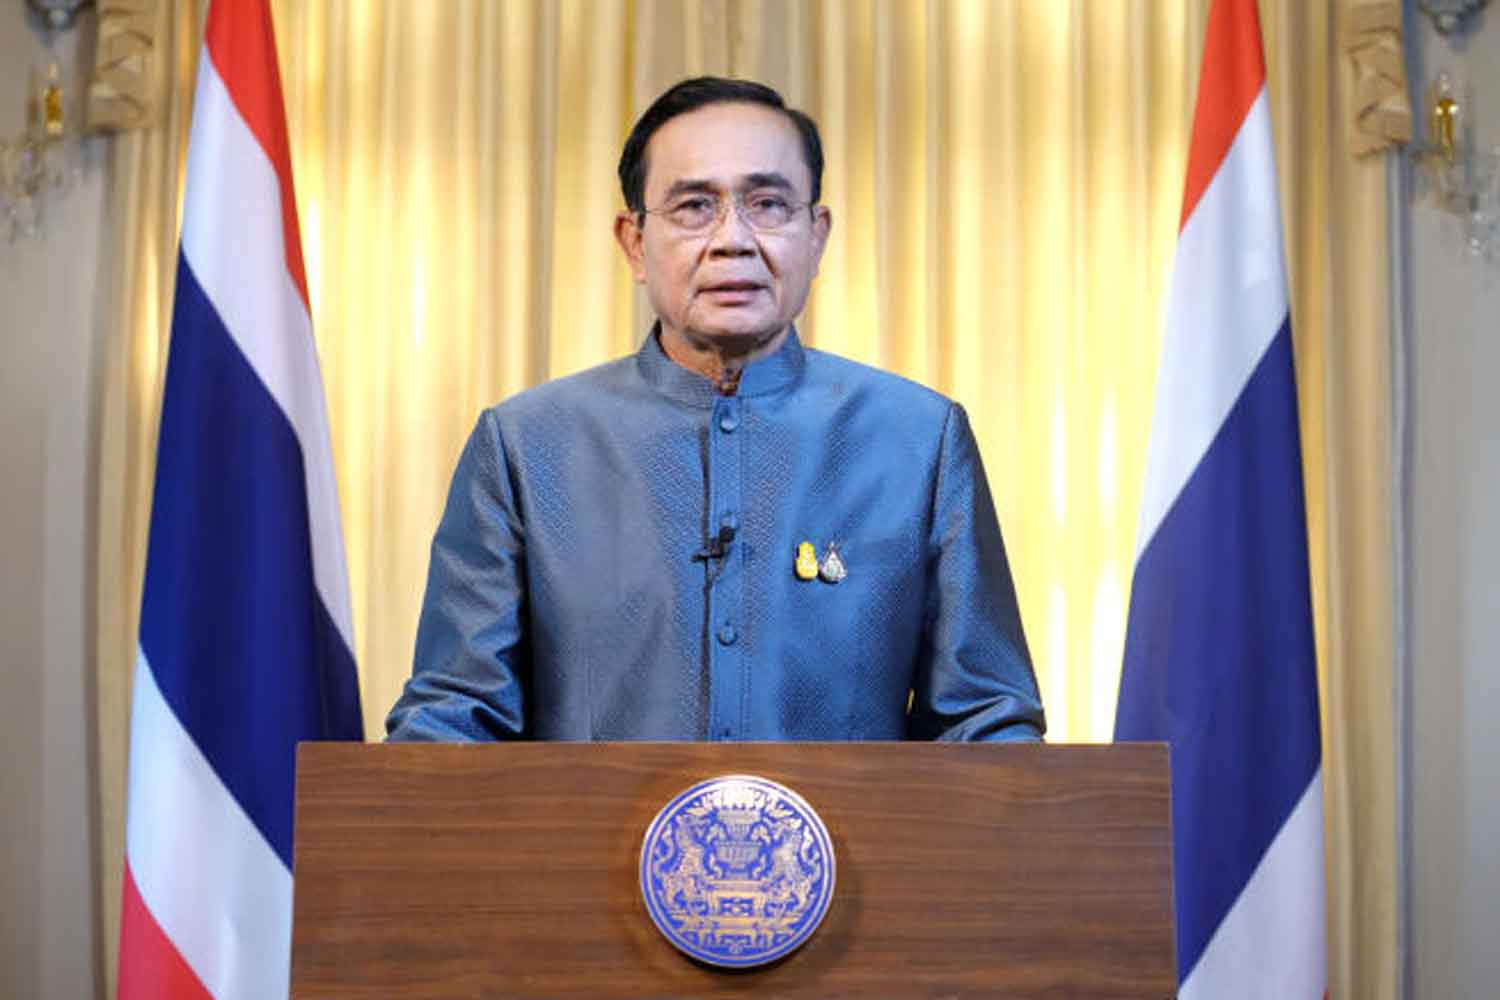 Prime Minister Prayut Chan-o-cha addresses the nation about the recent outbreak of Covid-19 in the country. In the televised address, he hinted at travel curbs and a potential ban on New Year celebrations. (Government House photo)